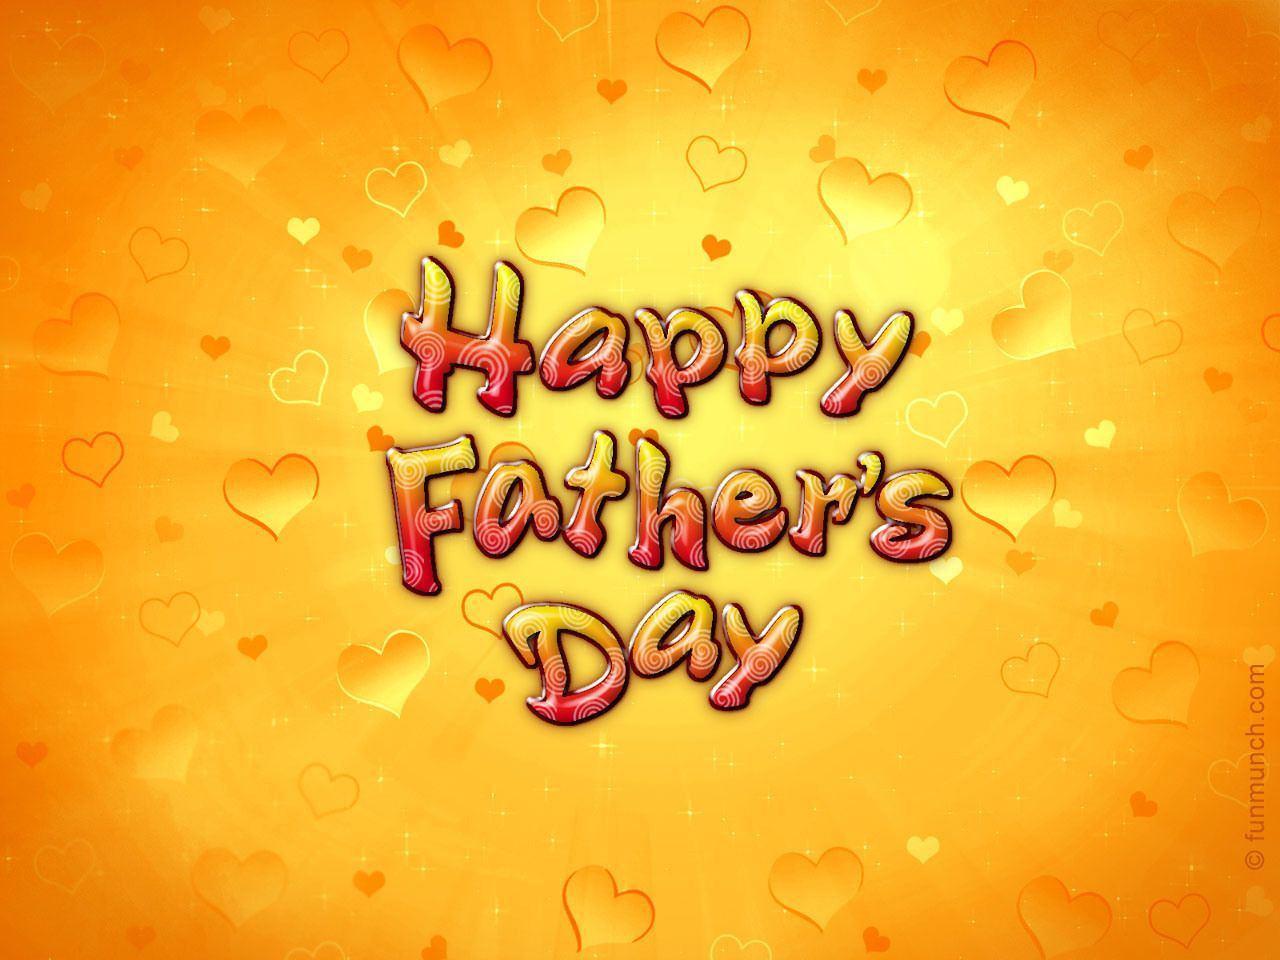 Fathers Day Messages From Wife To Husband Tagalog Make Your Fathers